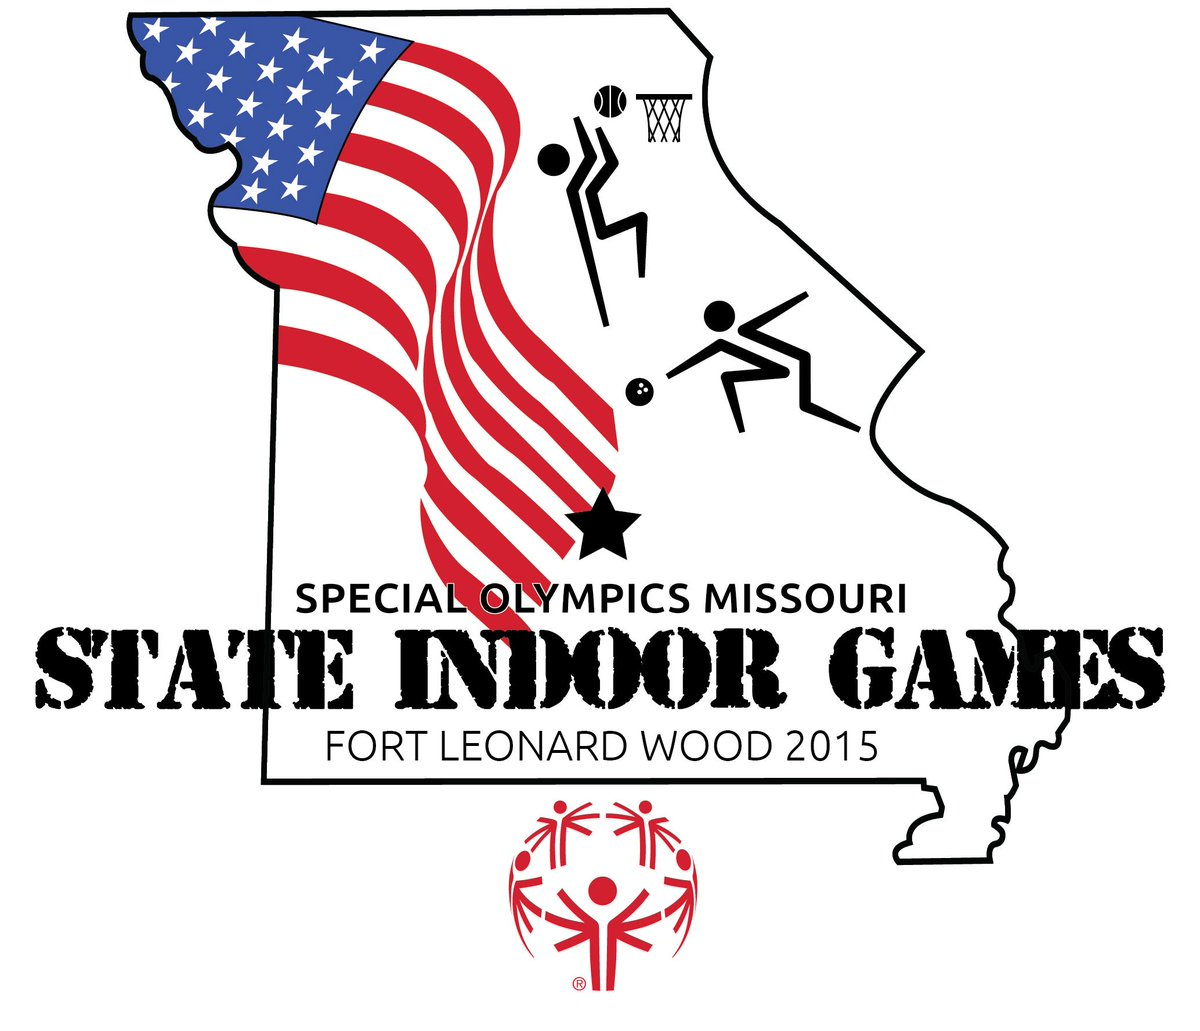 Special Olympics MO comes to @fortleonardwood this wknd for @SOMissouri State Indoor Games!